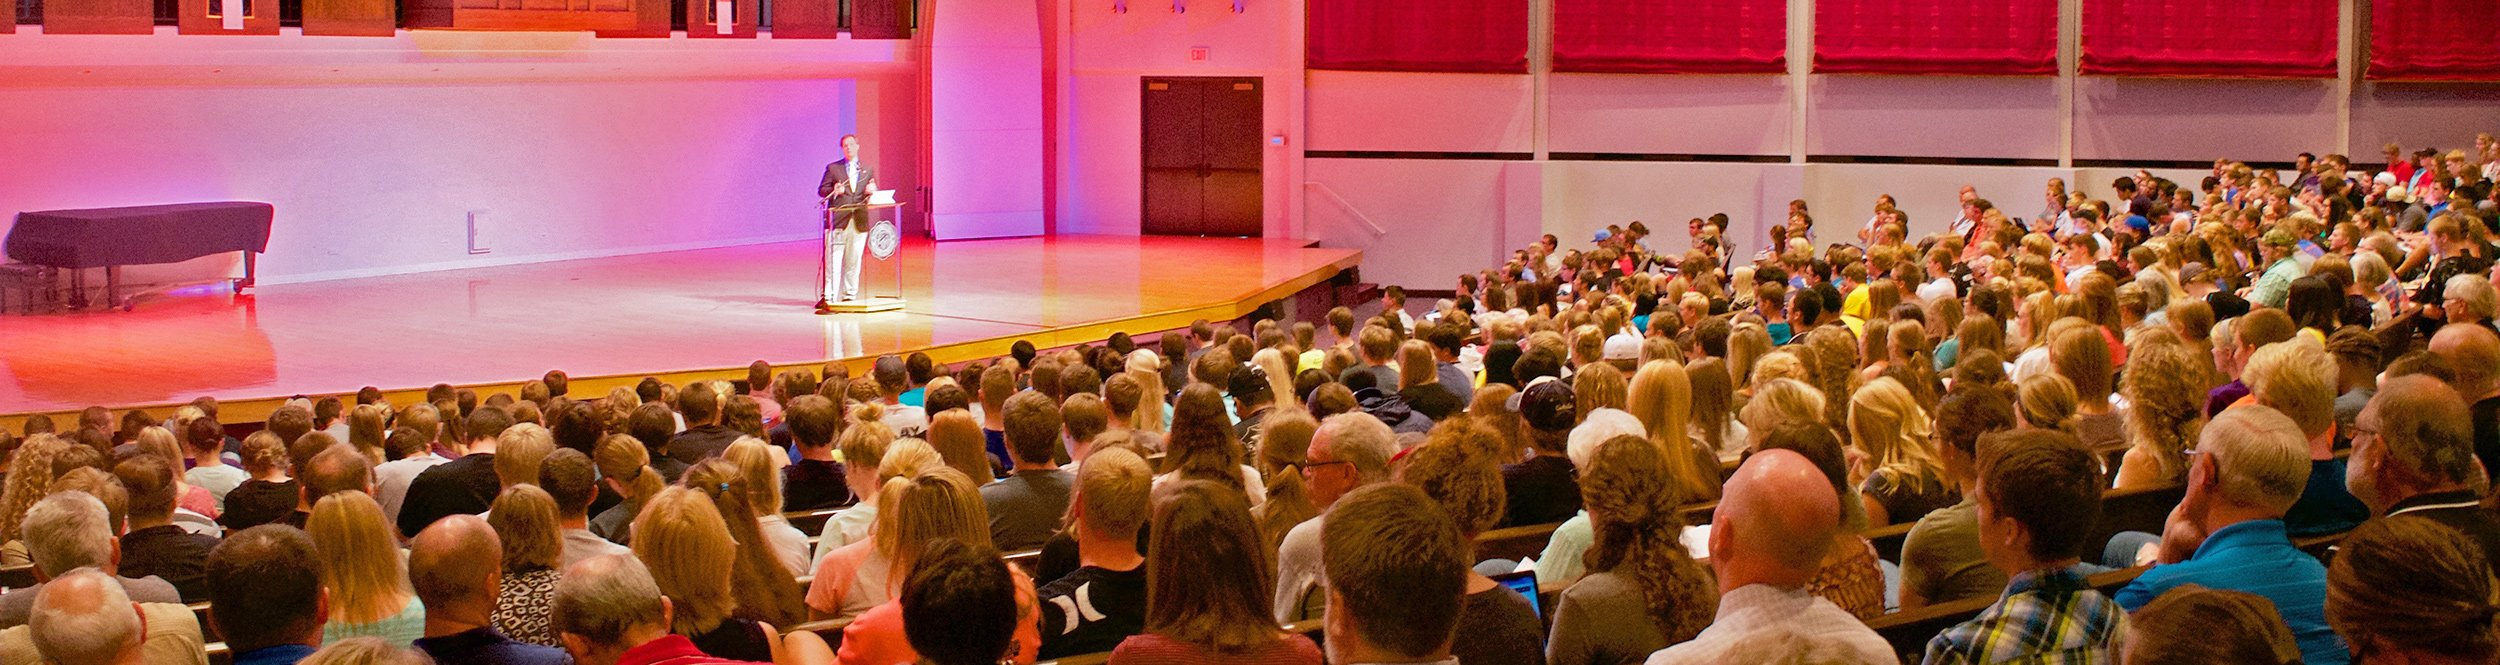 A speaker addresses a large crowd in an auditorium.